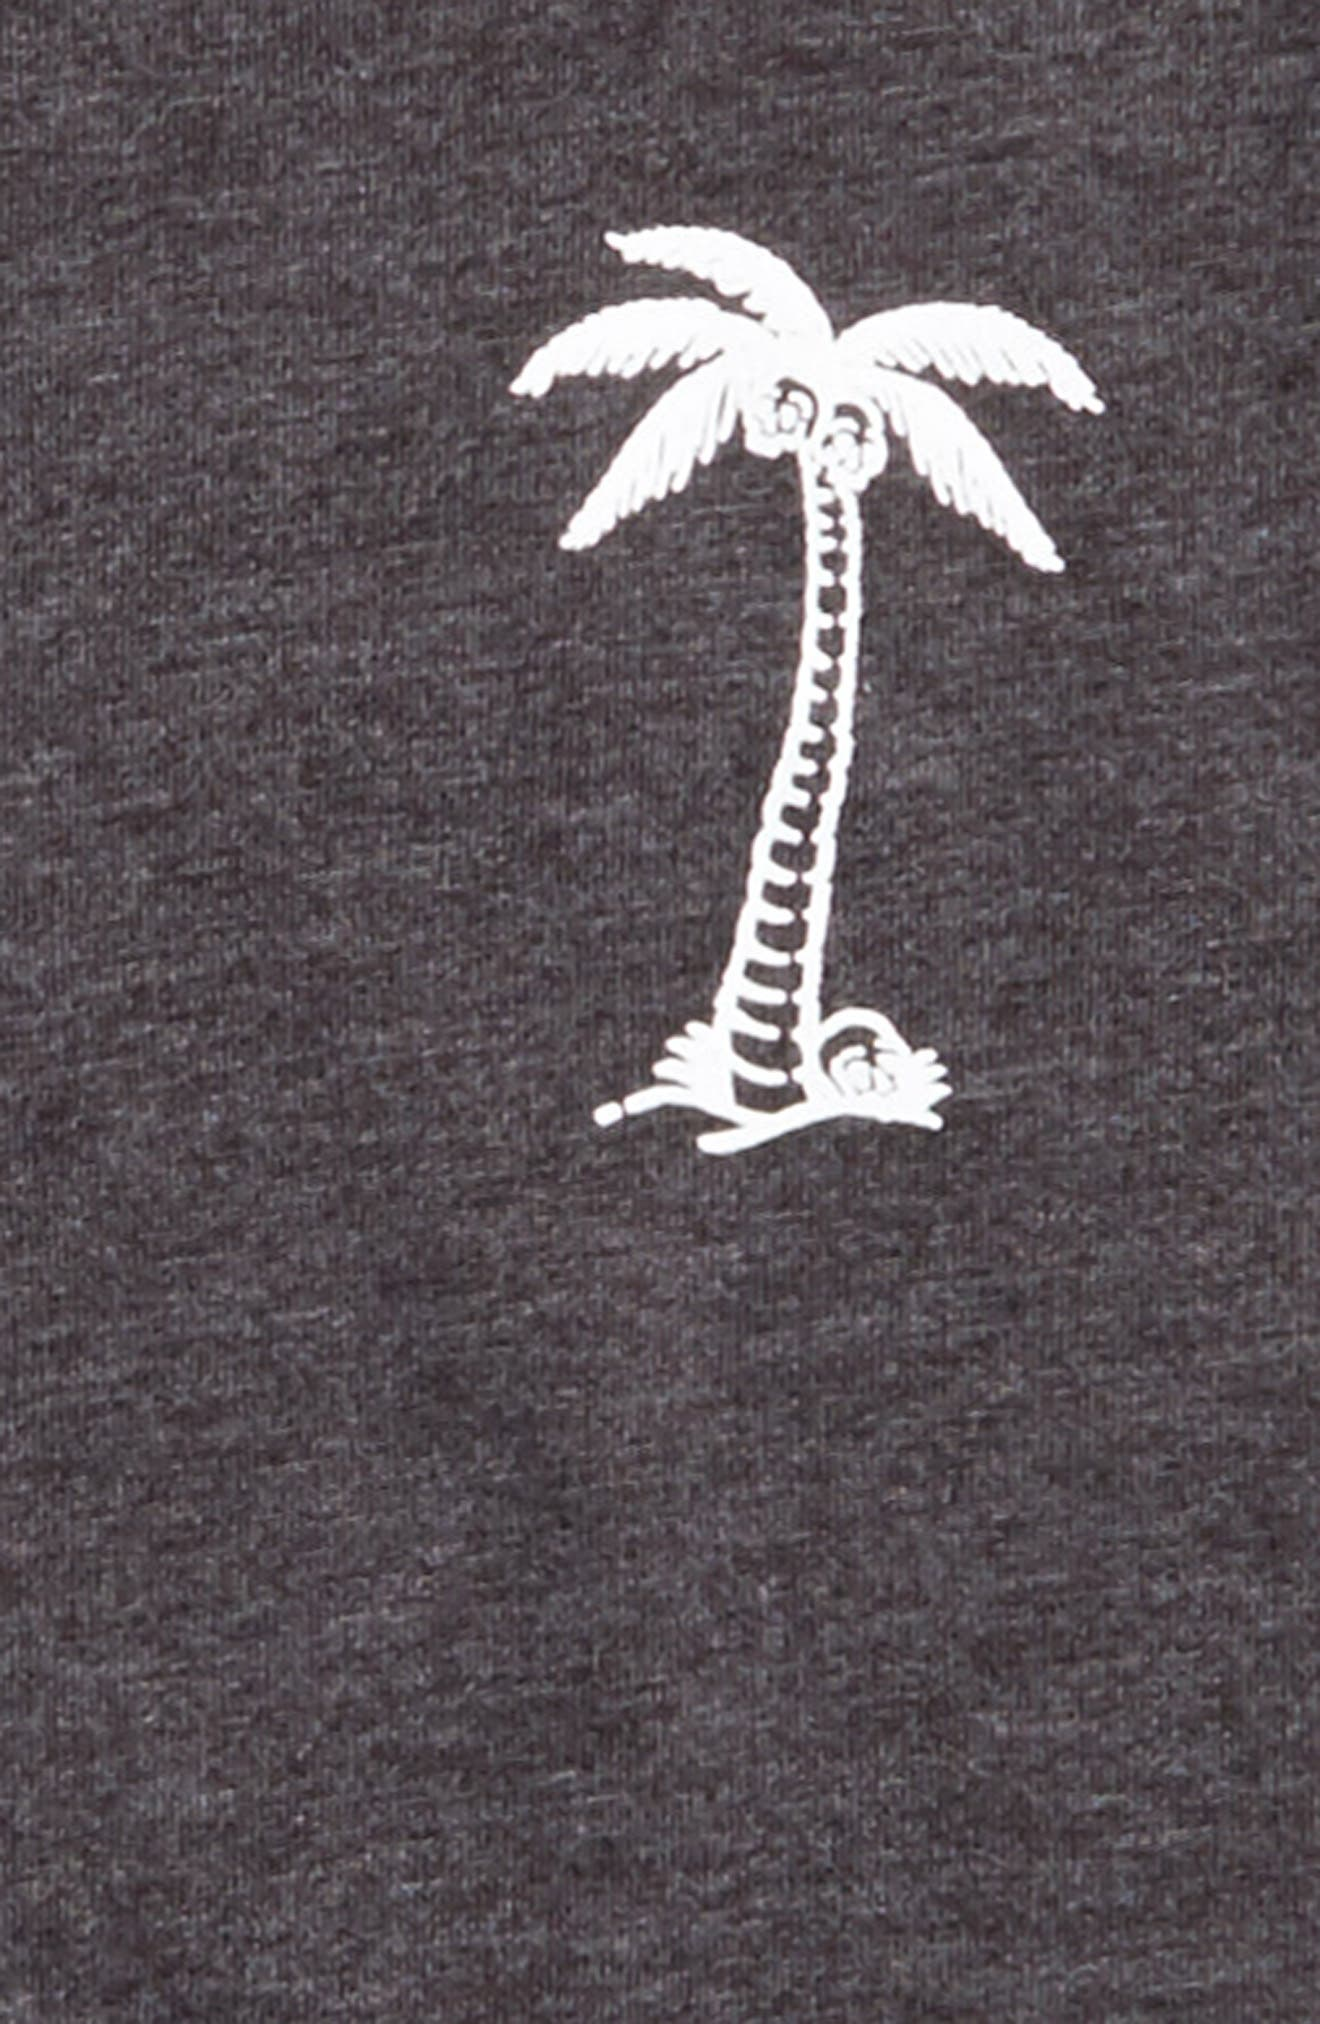 BBTV Palm Tree Graphic T-Shirt,                             Alternate thumbnail 3, color,                             Black Heather